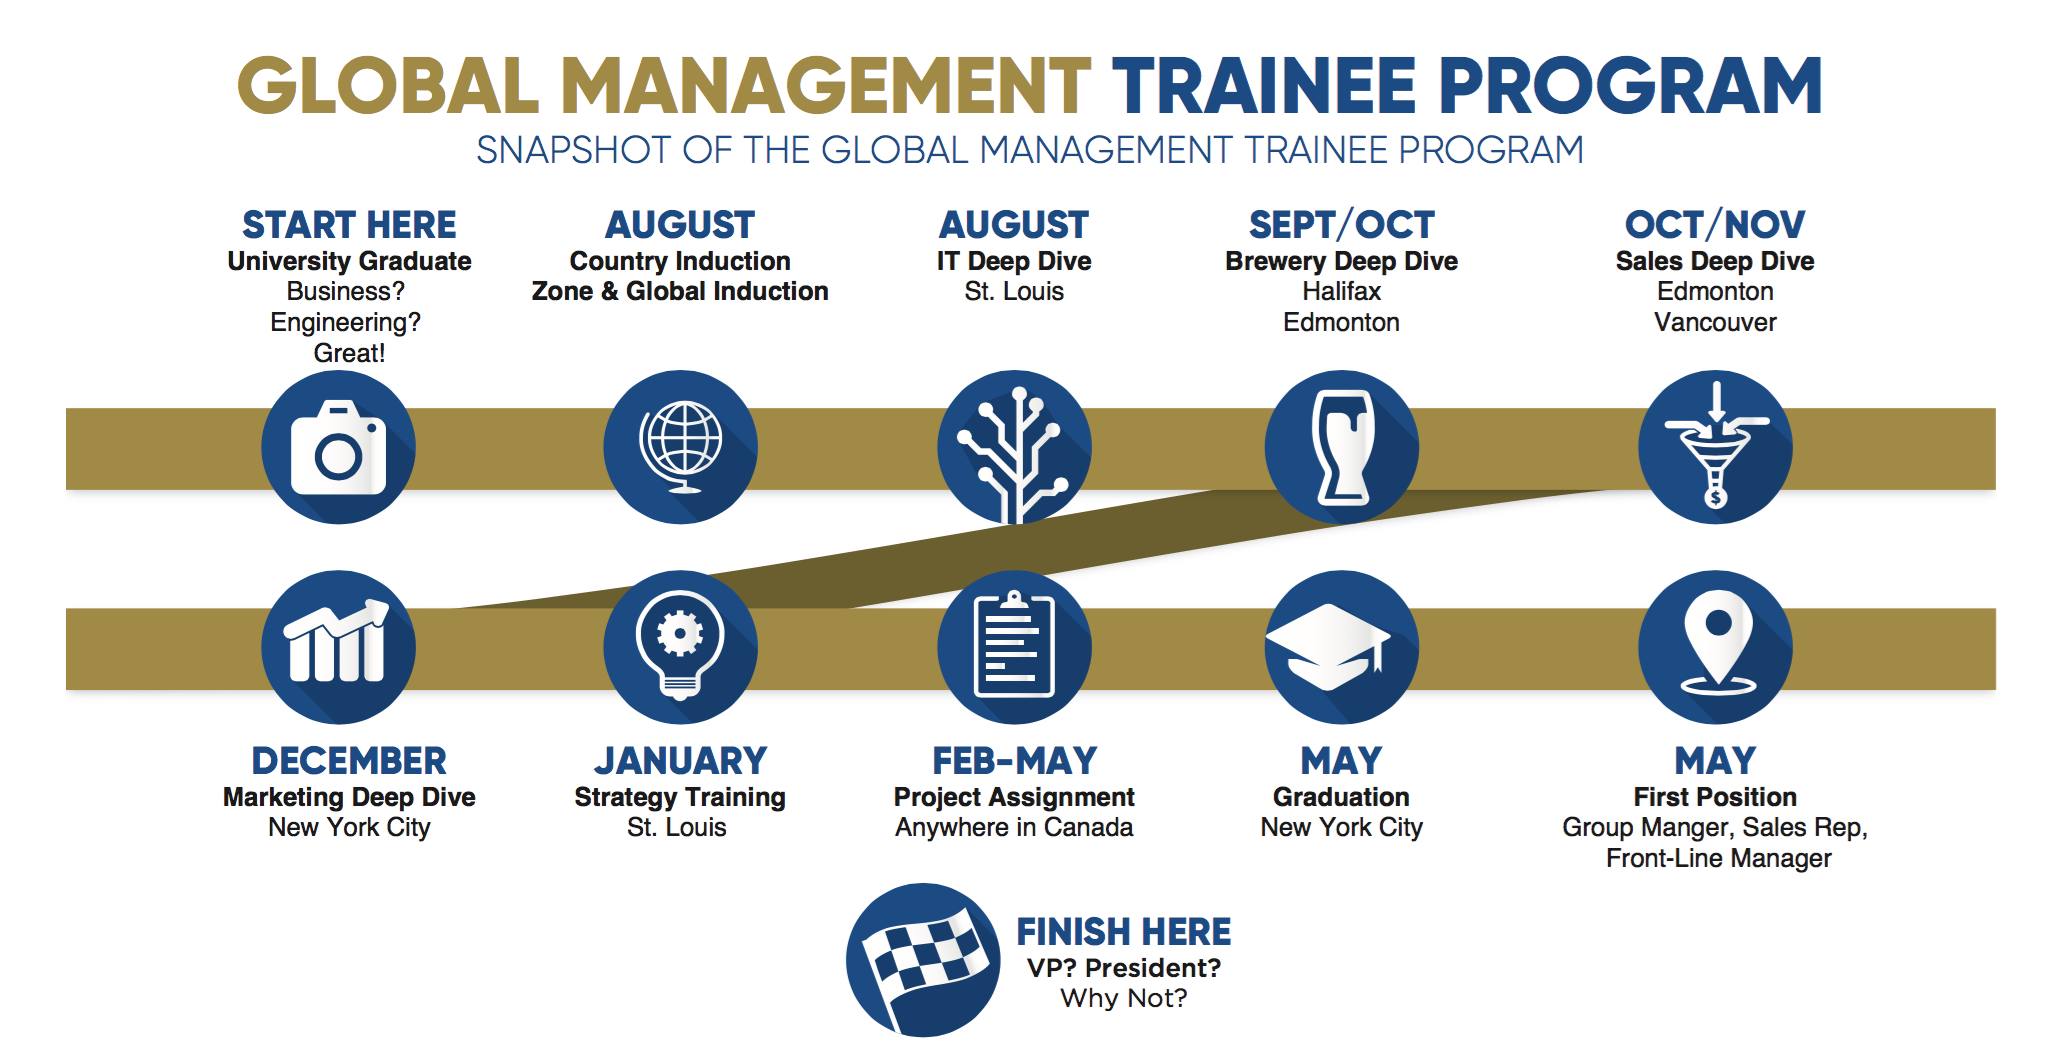 management trainee program Today's top 134 management trainee program jobs in atlanta, ga leverage your professional network, and get hired new management trainee program jobs.